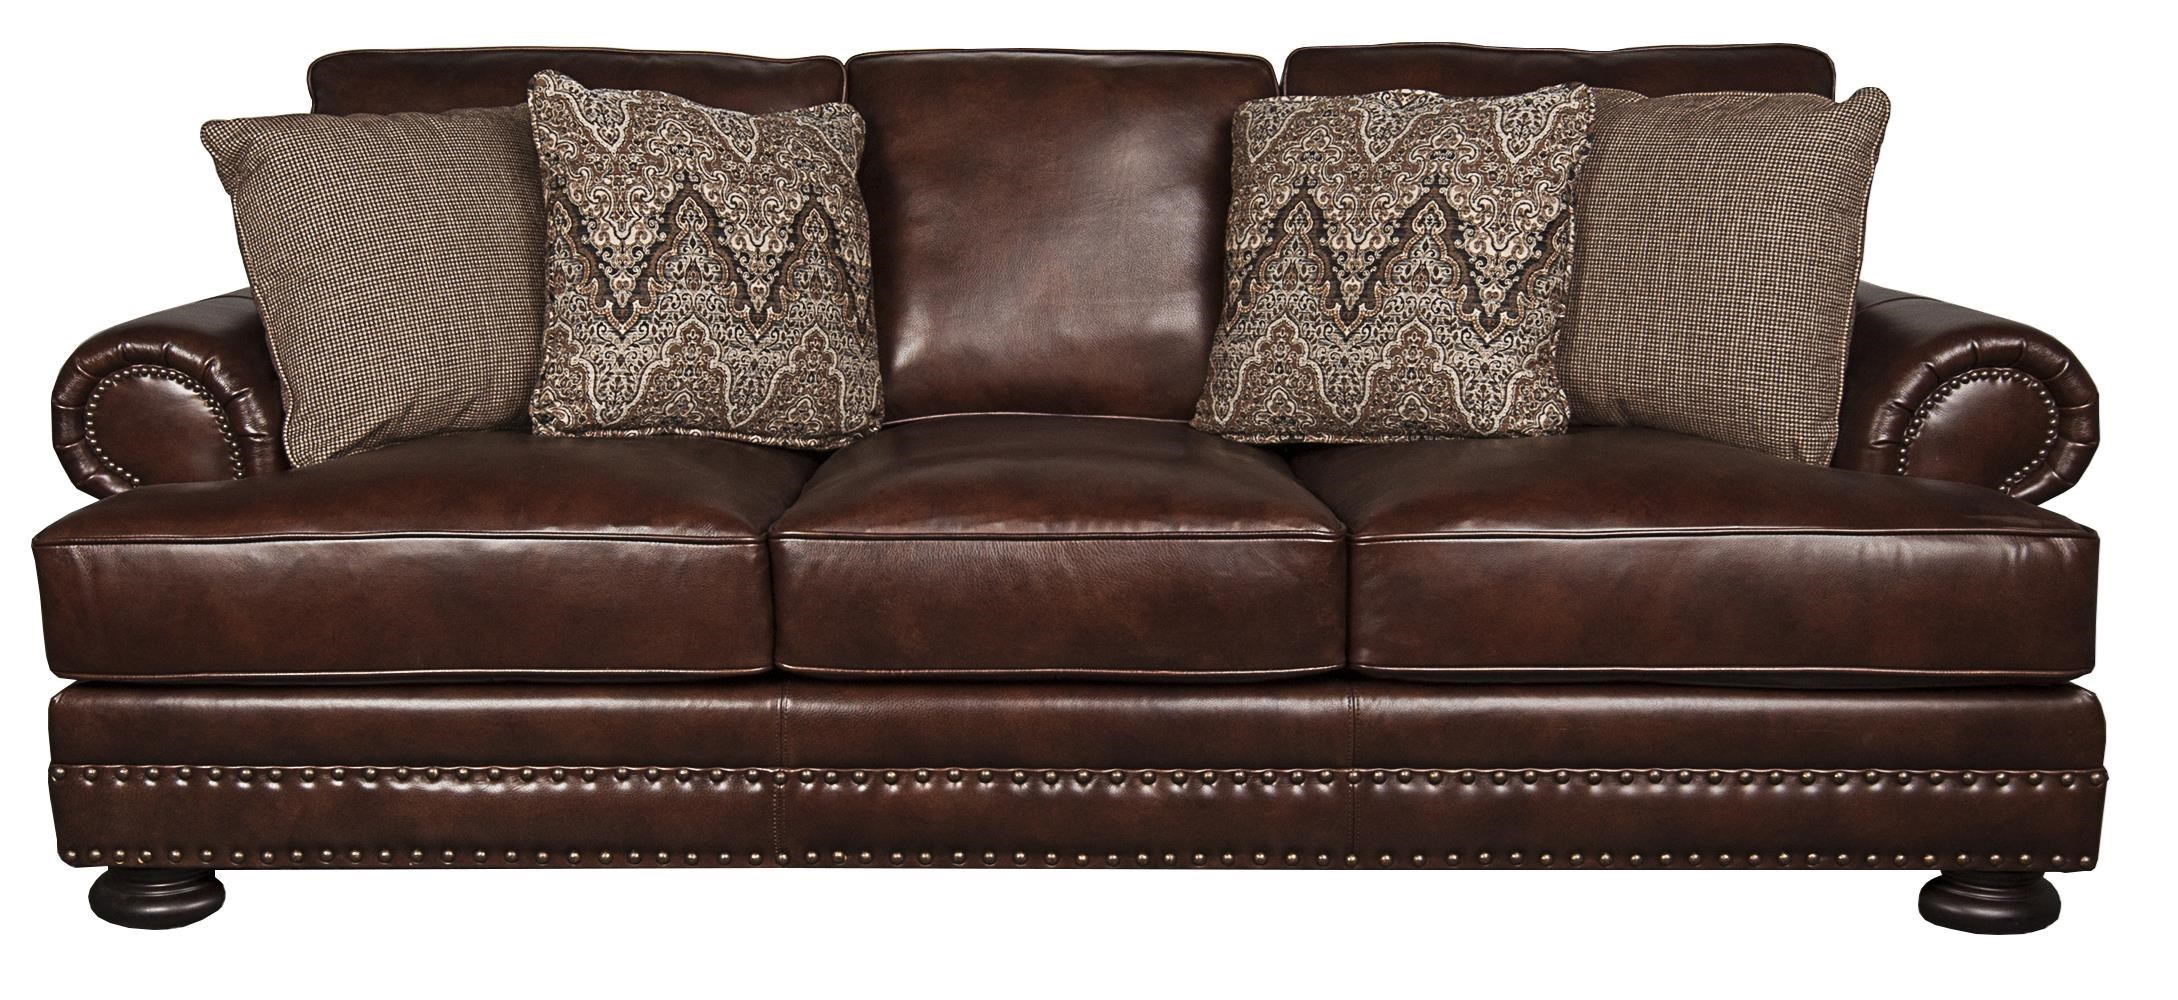 foster foster 100 leather sofa